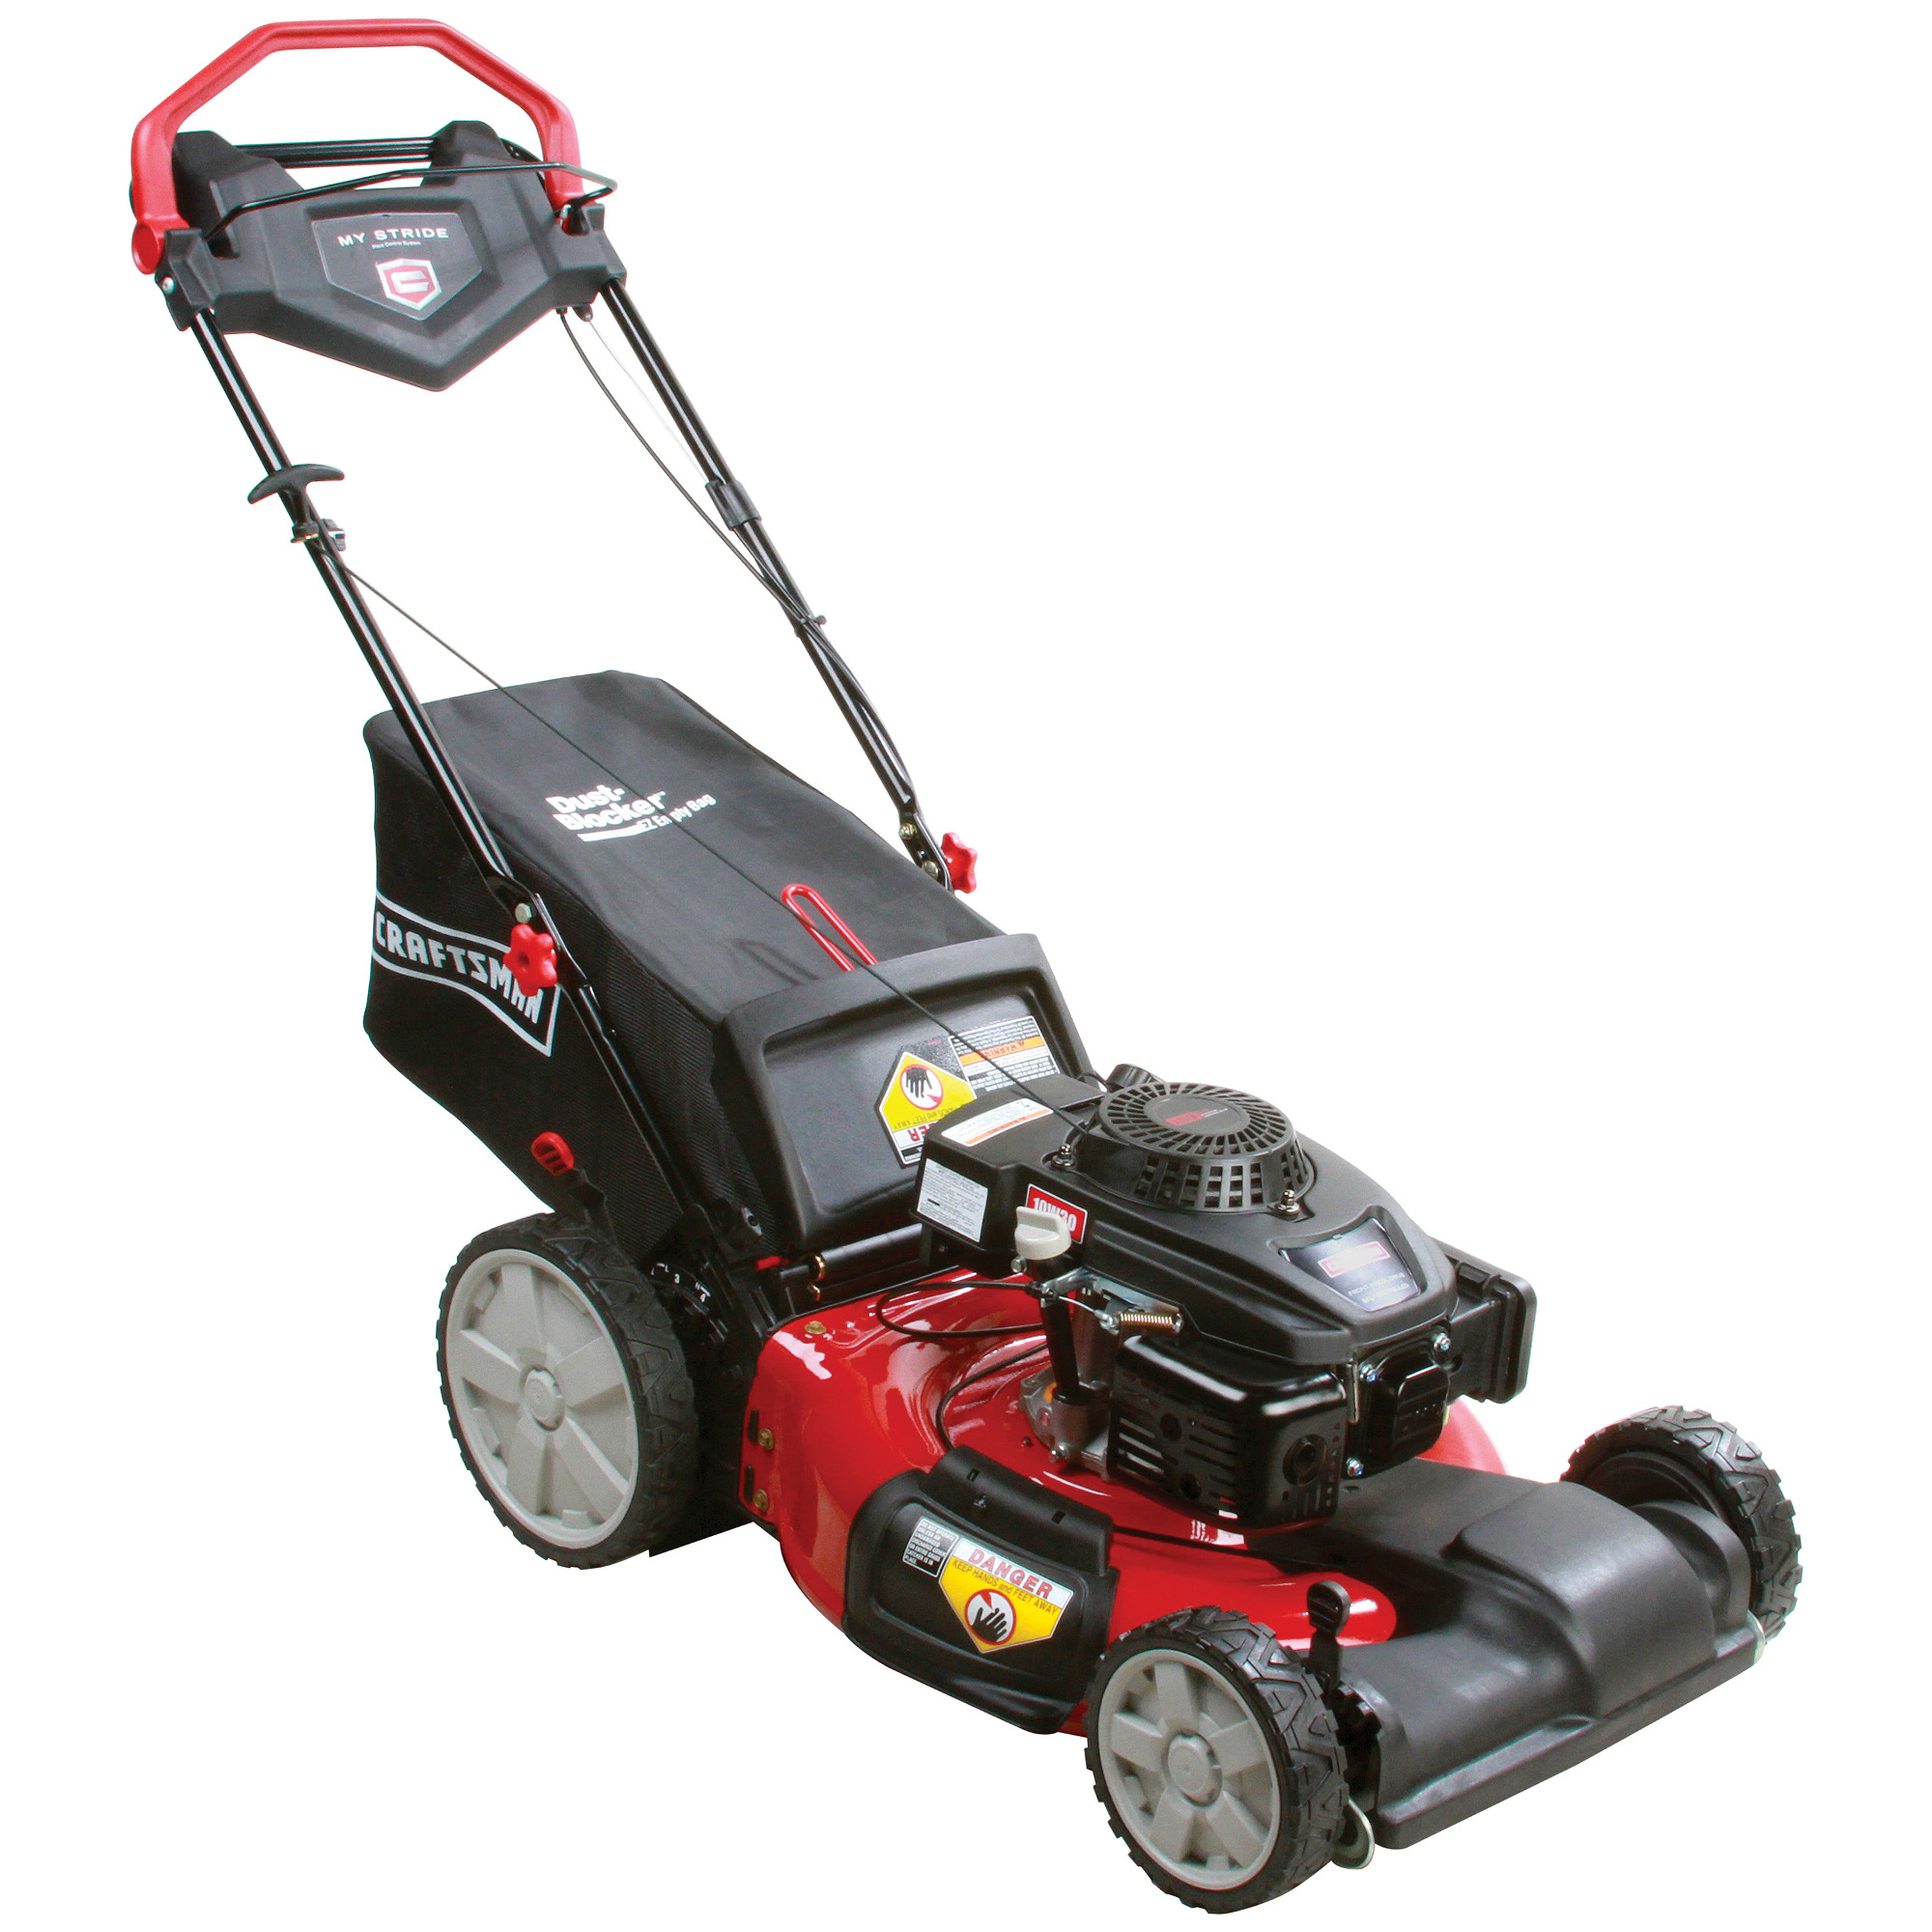 Lawn Mower Craftsman 159cc My Stride Front Wheel Drive Mower Lawn